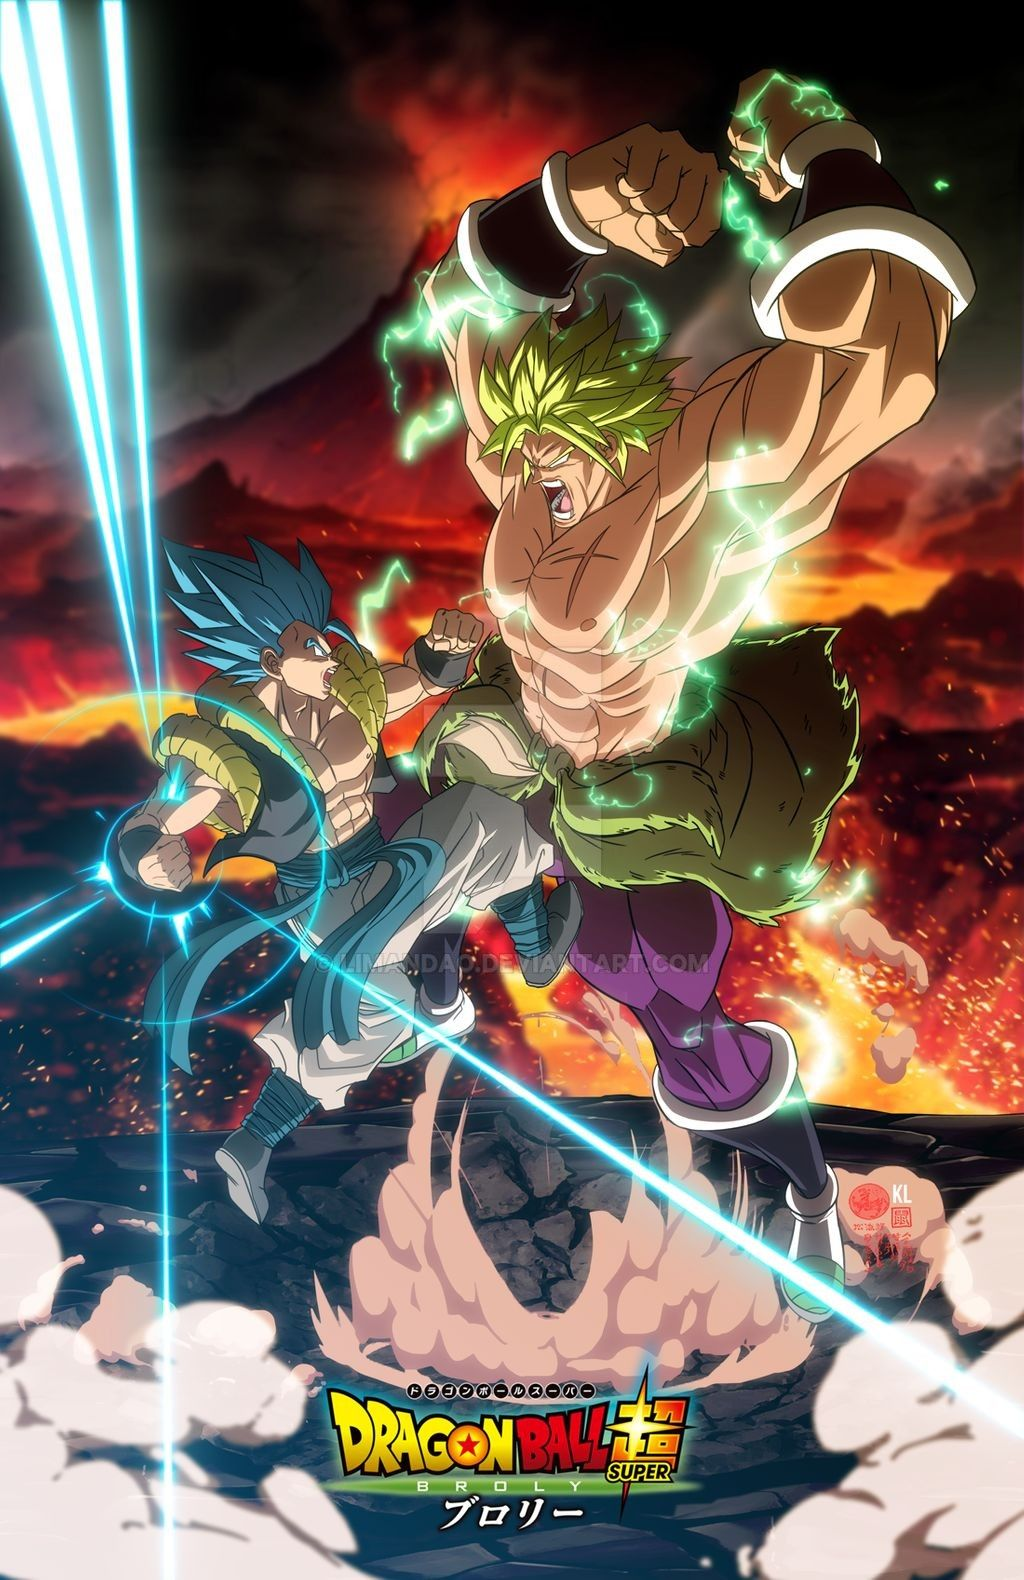 Dragon ball Super Broly: Mightiest VS Mightiest by limandao on DeviantArt